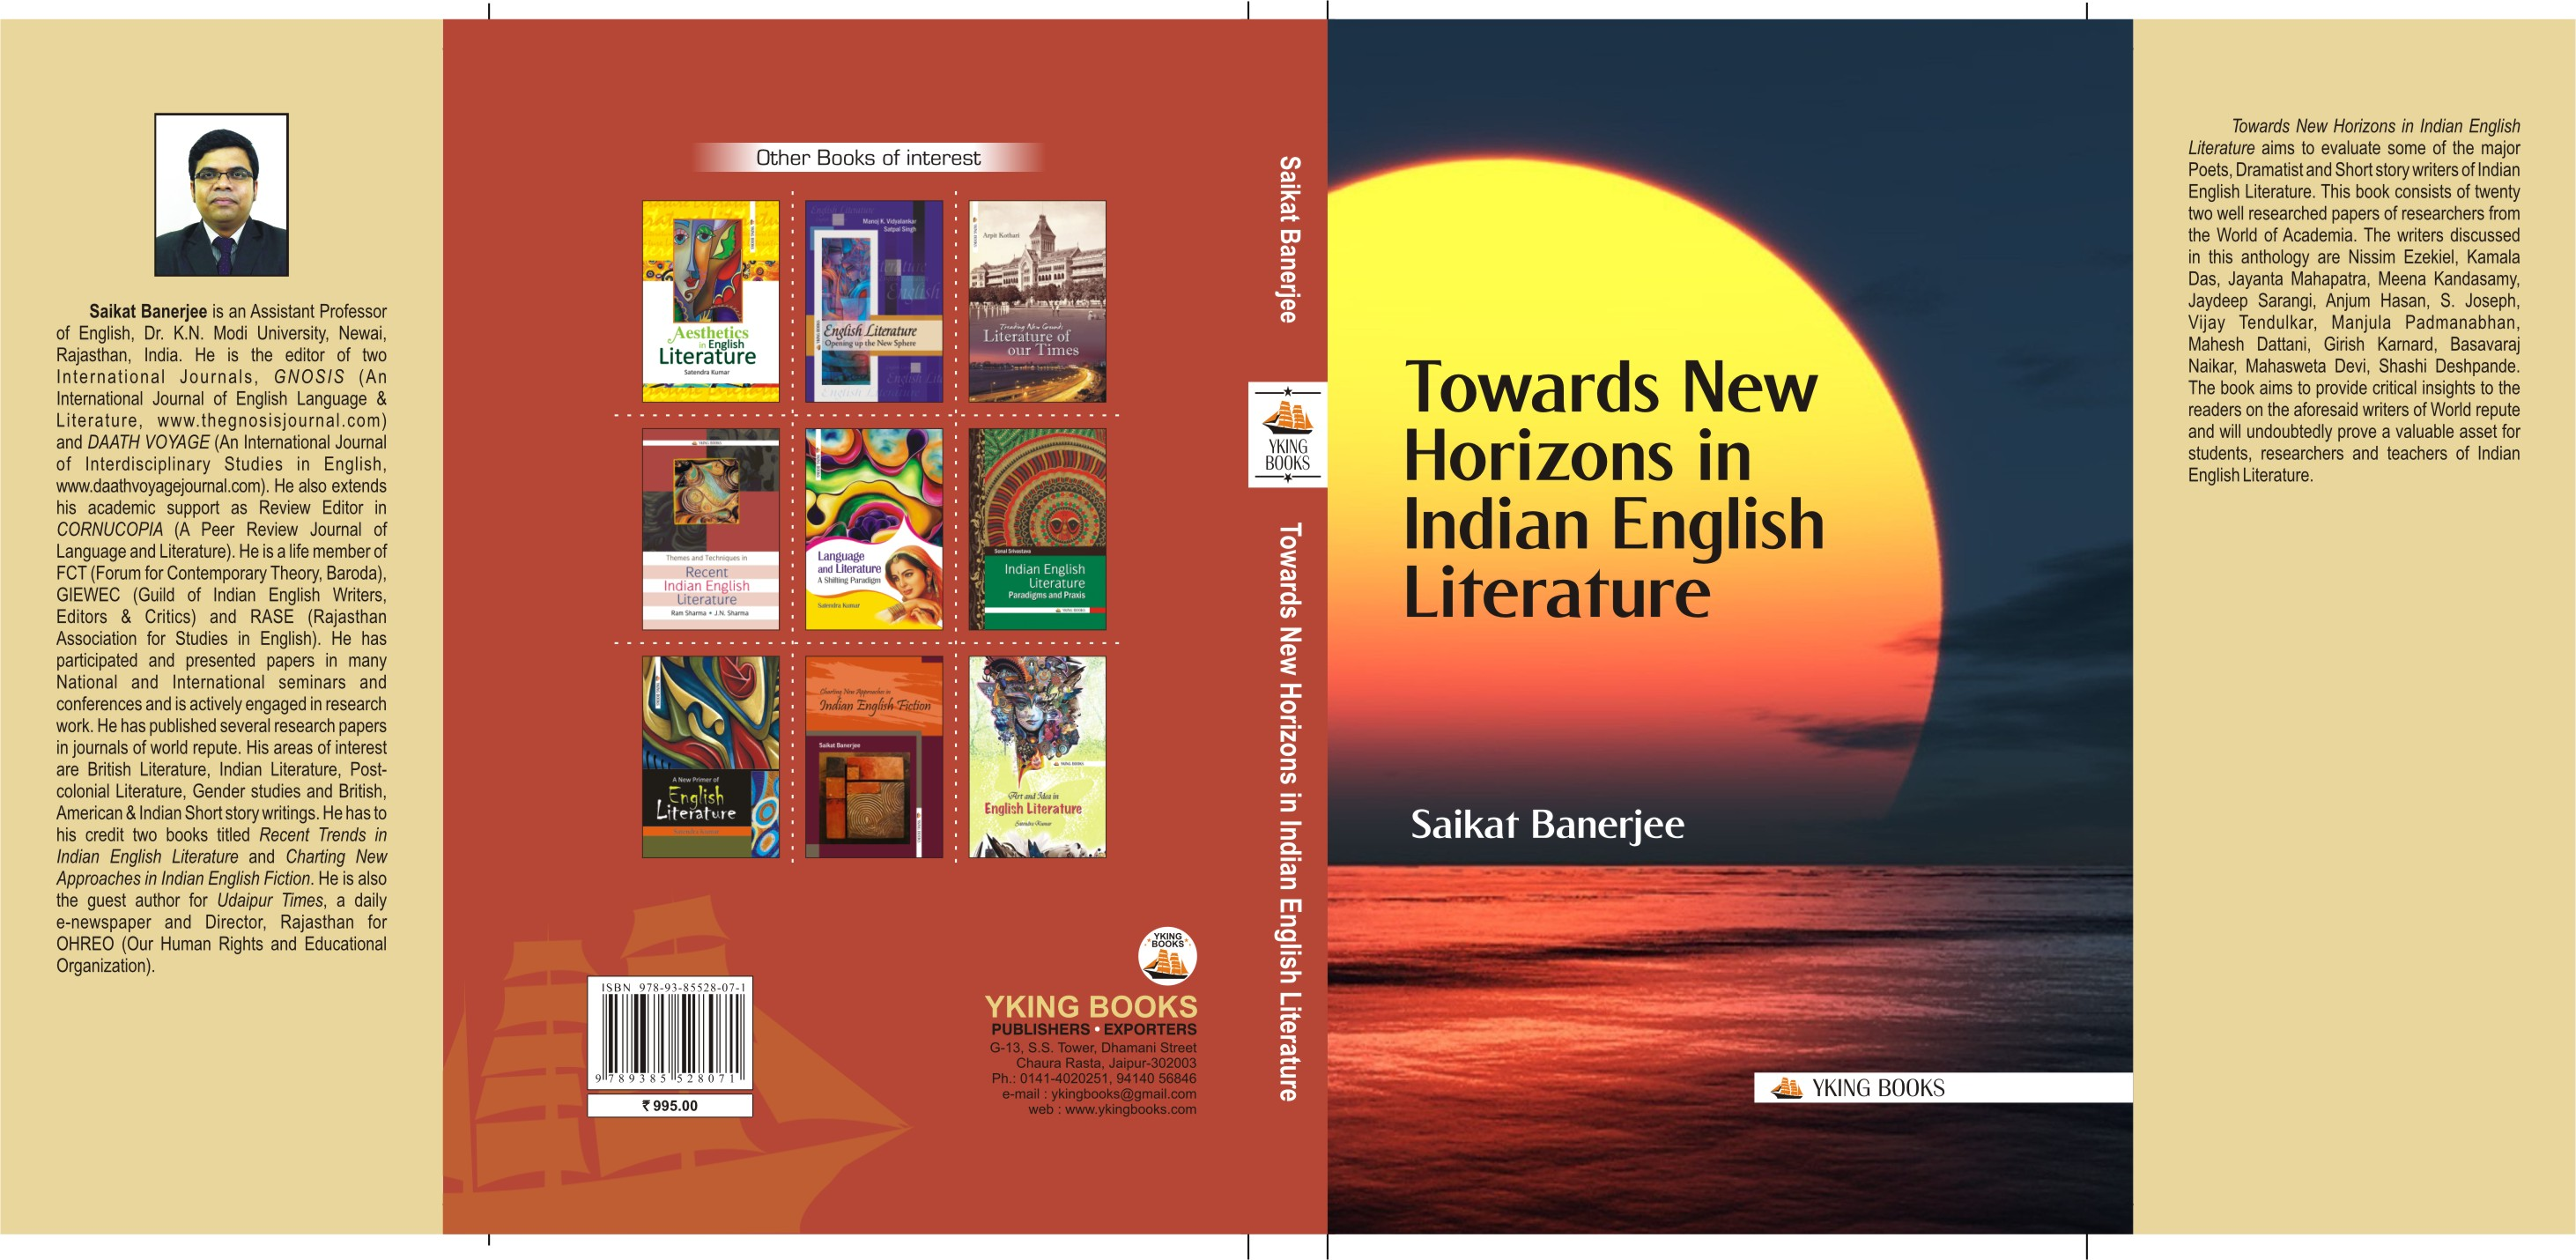 Towards New Horizons in Indian English Literature